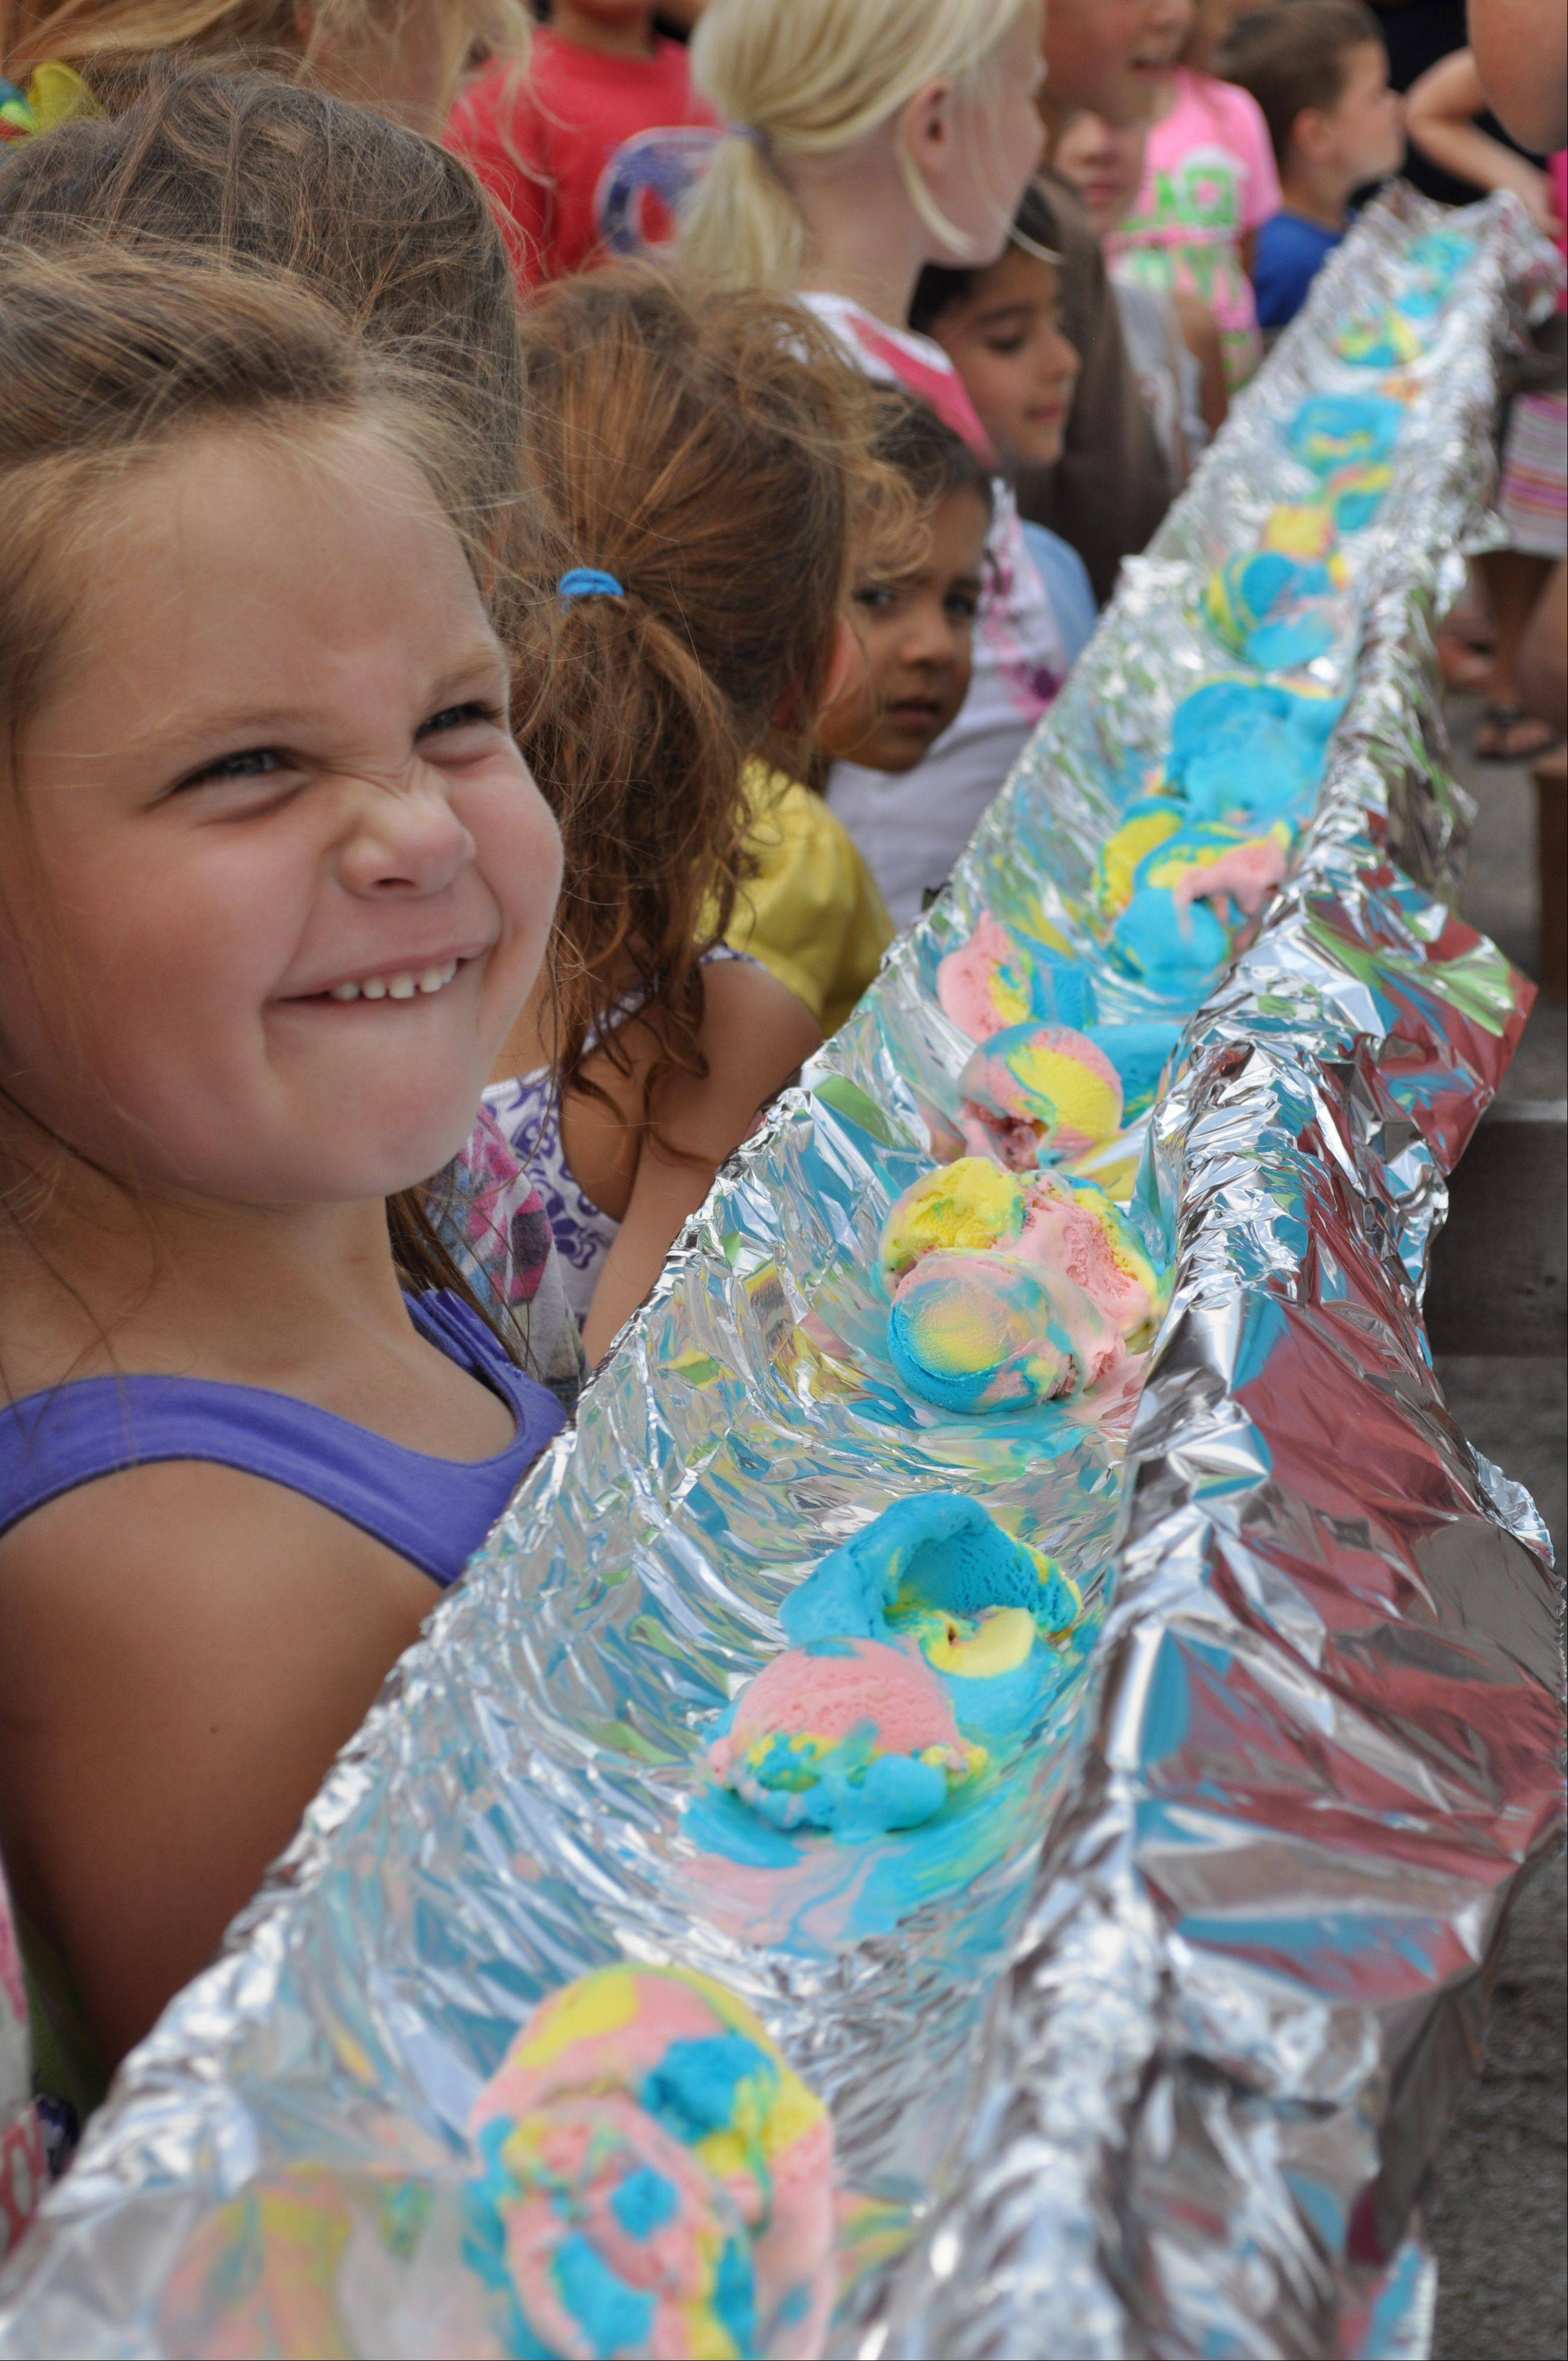 Spoons not required: gather your friends for this year's ice cream eating contest at Batavia's Windmill City Festival. Teams can sign up for the 2 p.m. Sunday contest in front of the main stage.